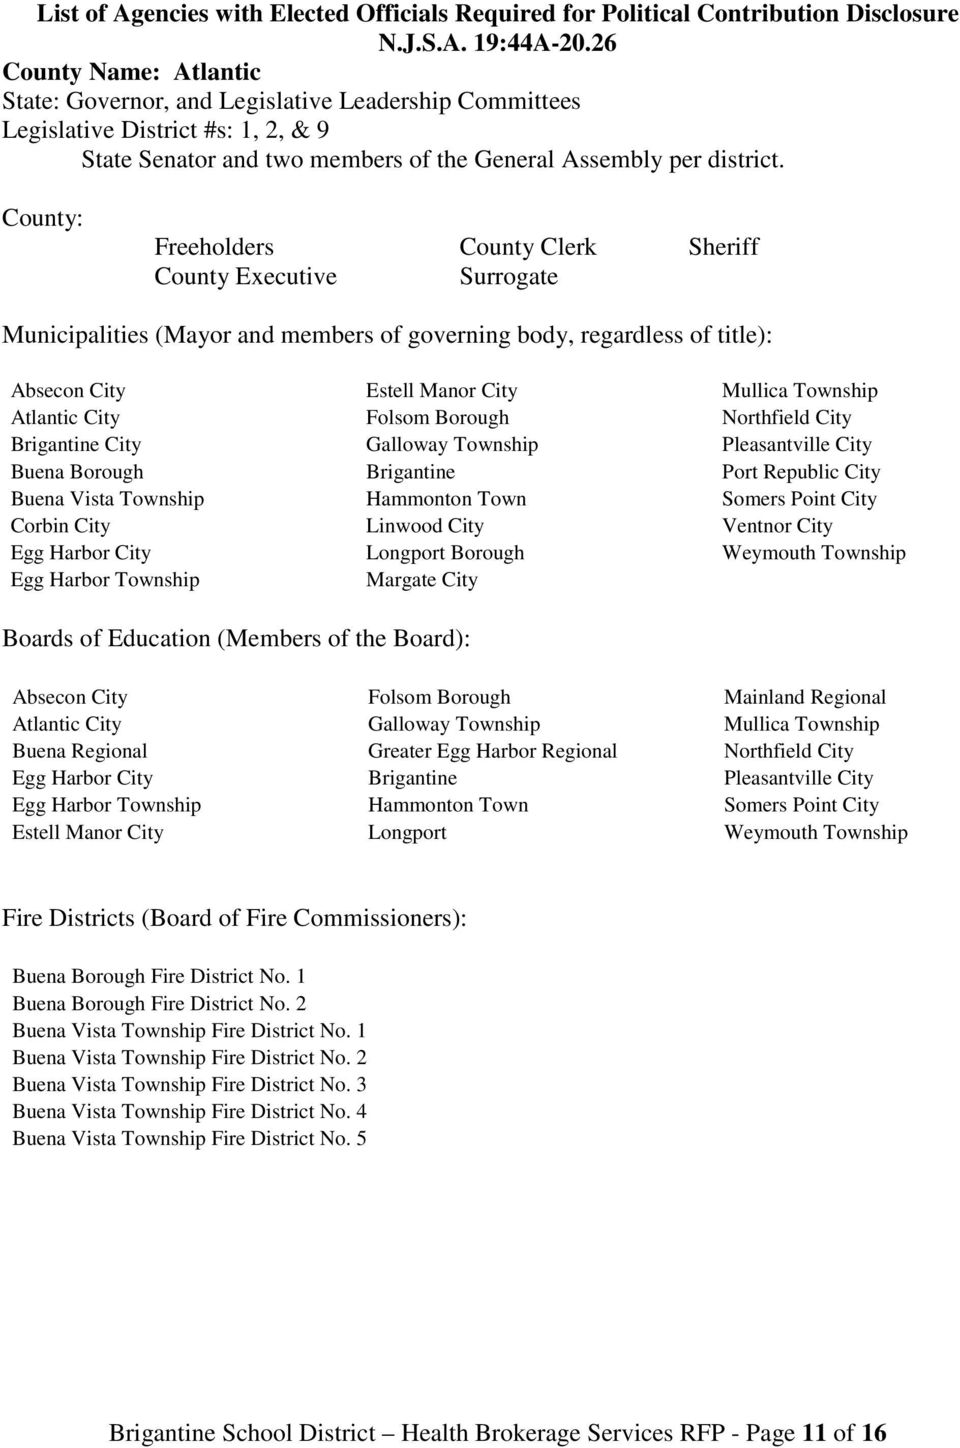 County: Freeholders County Clerk Sheriff County Executive Surrogate Municipalities (Mayor and members of governing body, regardless of title): Absecon City Atlantic City Brigantine City Buena Borough